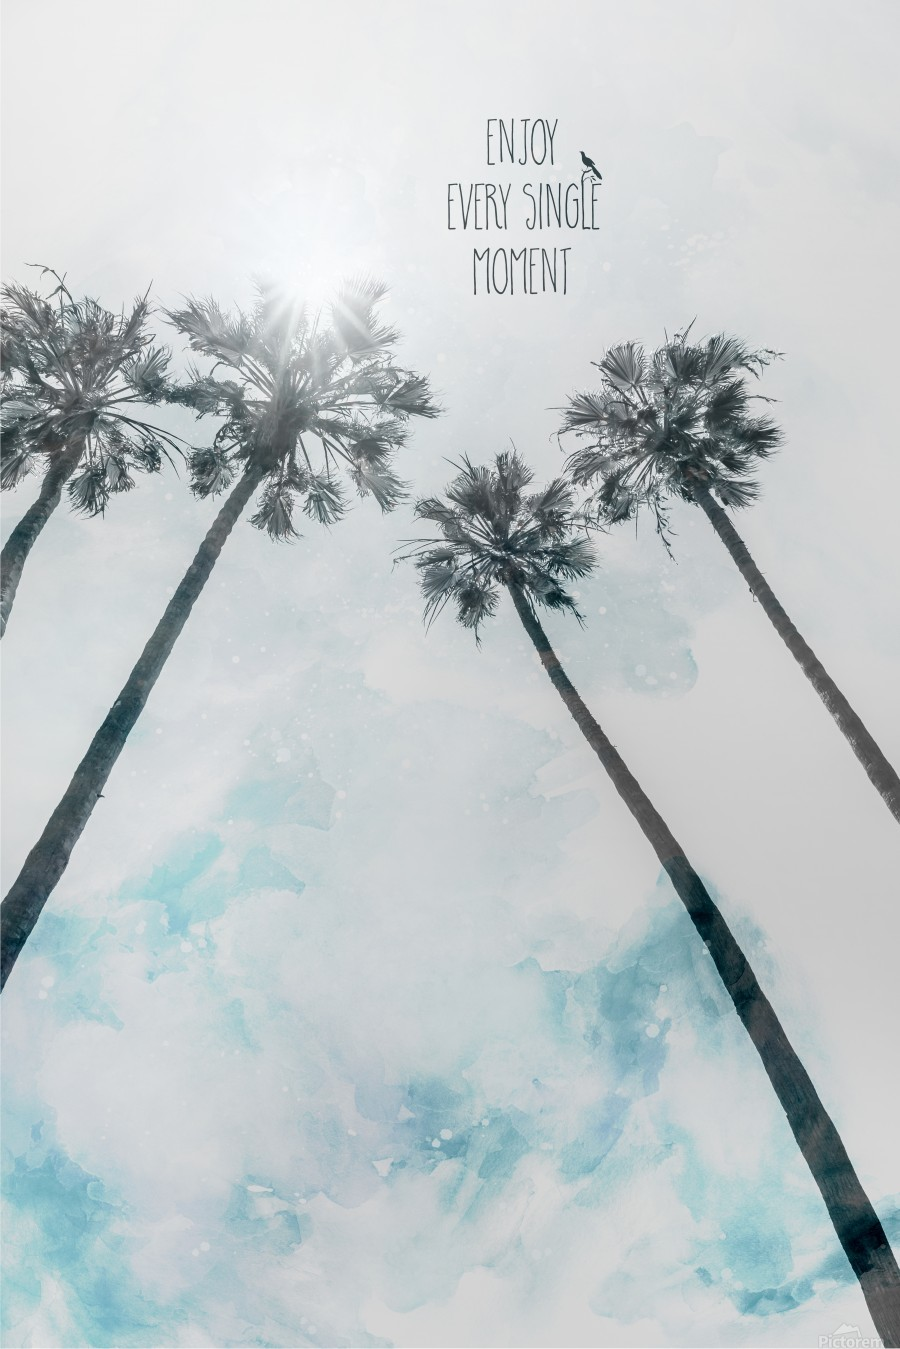 Palm trees with sun   enjoy every single moment  Print